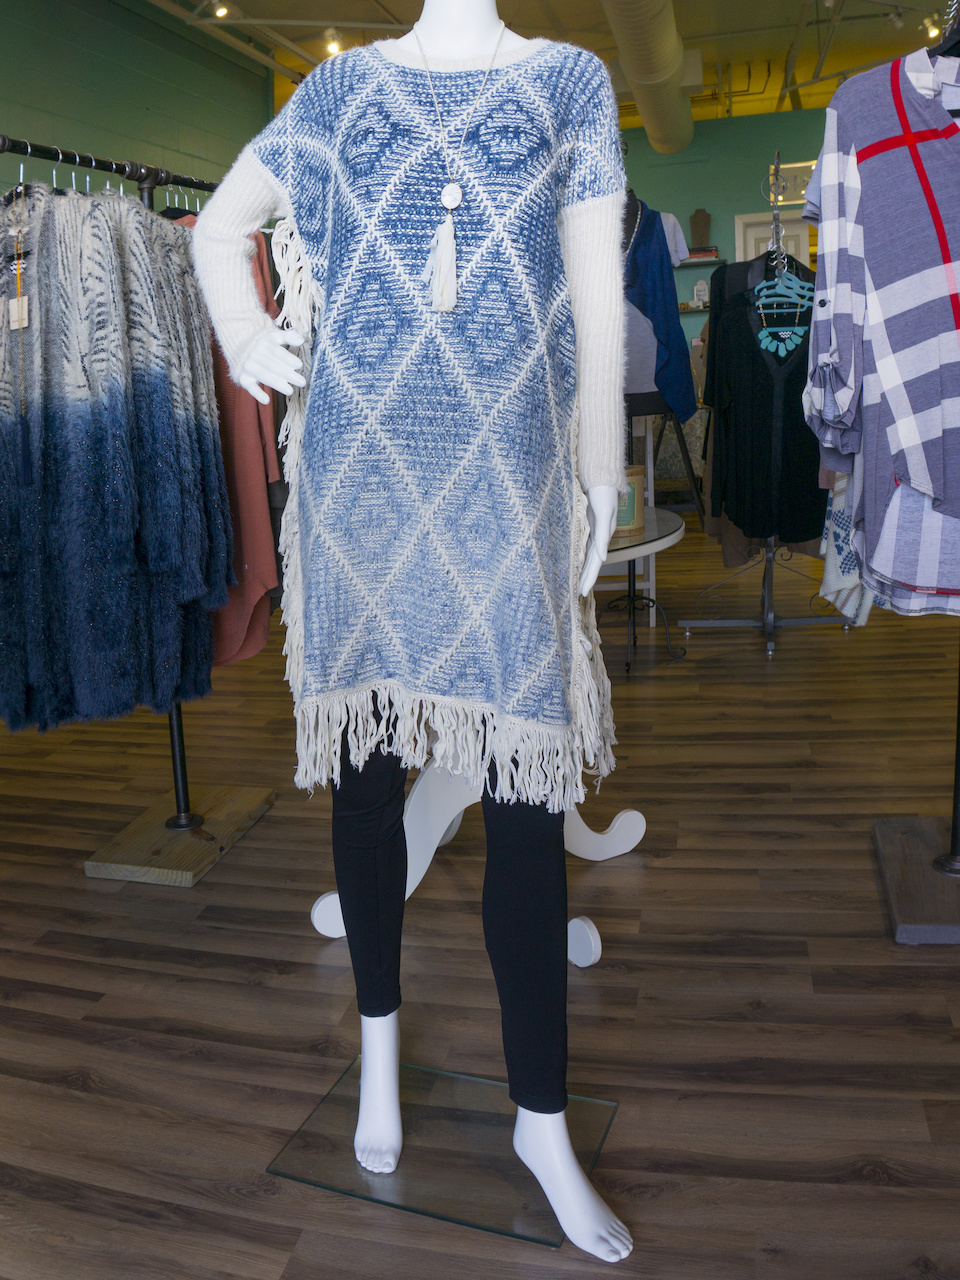 From Something Blue: Navy poncho with side split and fringe, $52; White tassle necklace, $28; Leggings, $15